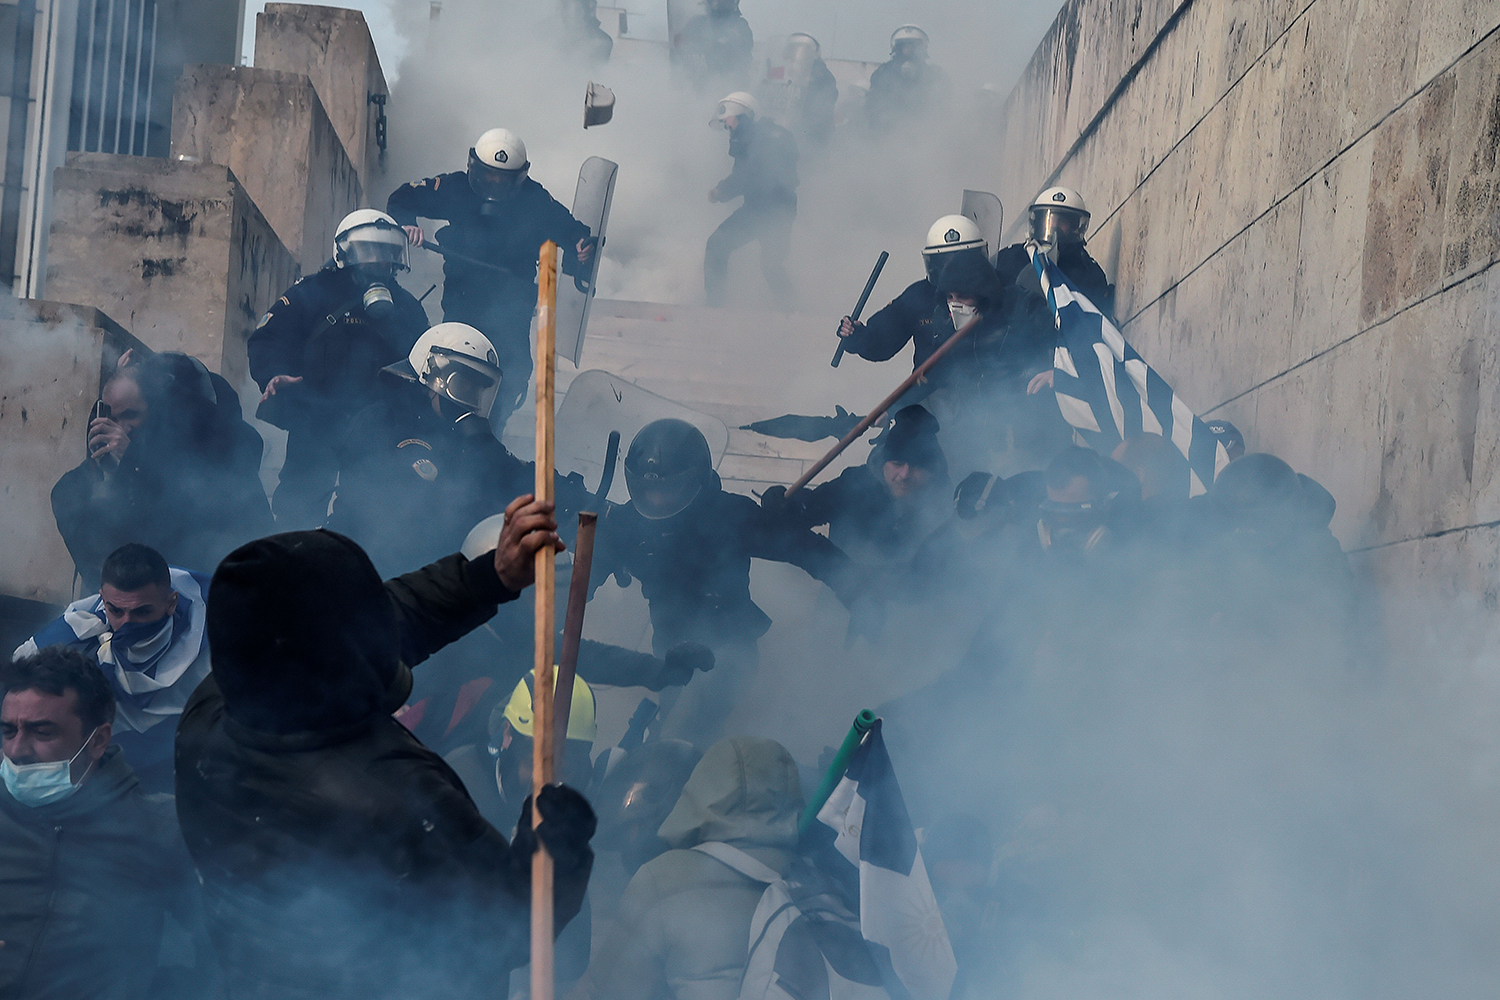 GREECE | Protesters clash with police during a demonstration against an agreement with Skopje to rename the neighboring country Macedonia as the Republic of North Macedonia, in Athens on Jan. 20. LOUISA GOULIAMAKI/AFP via Getty Images